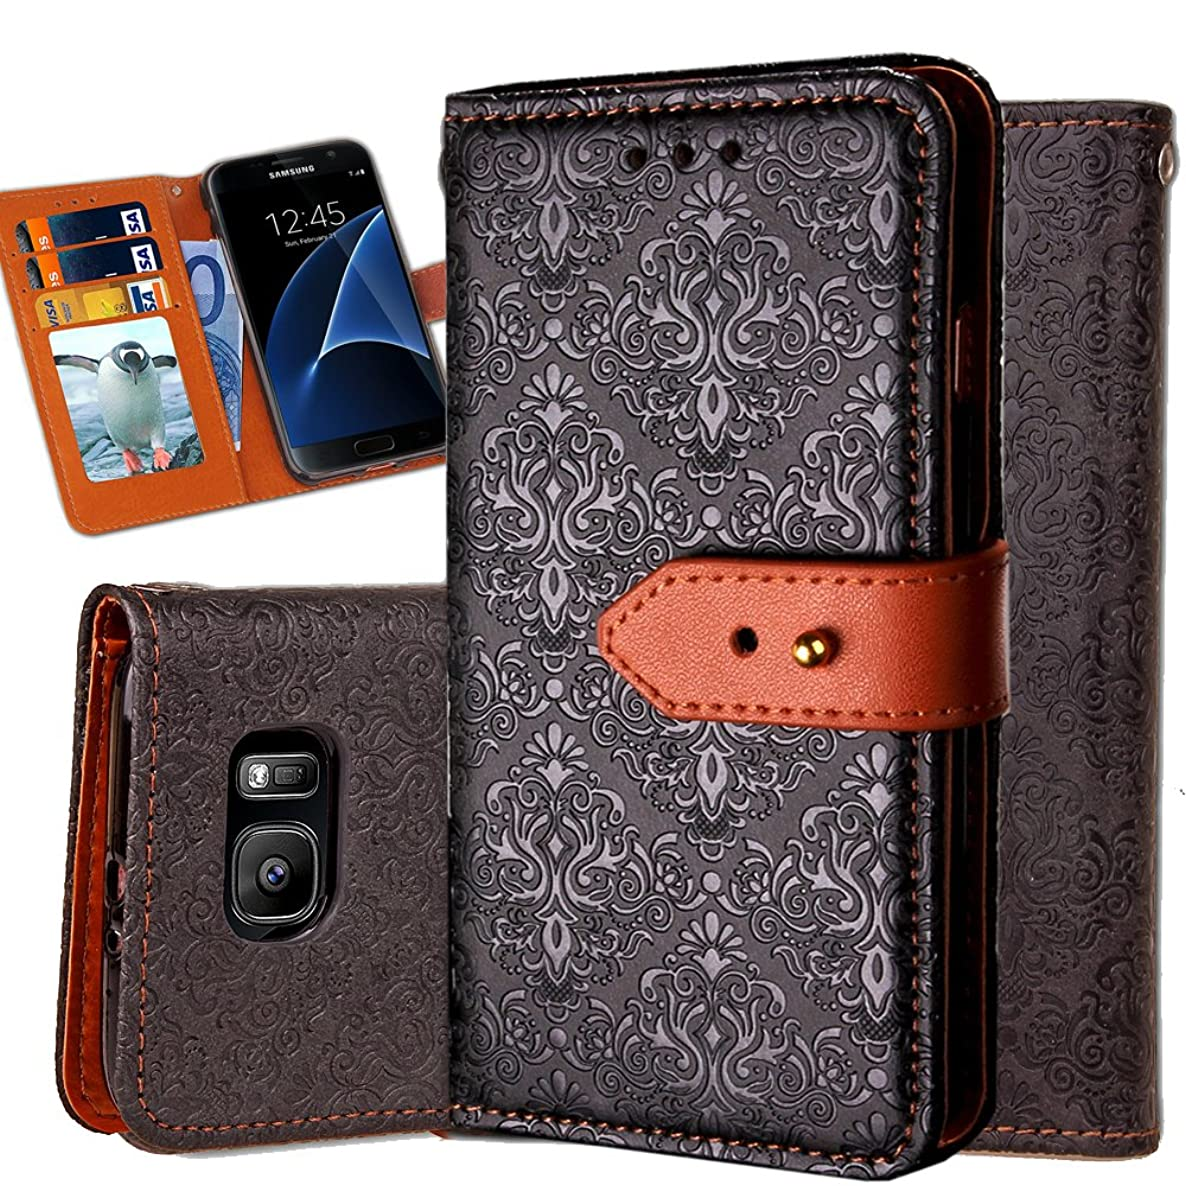 Galaxy S7 Edge Wallet Case,Auker Ultra Slim Vintage Leather Folio Flip Book Style Fold Stand Case Fashion Purse Carrying Phone Cover with Card Holders&Hidden Pocket for Samsung Galaxy S7 Edge (Black)